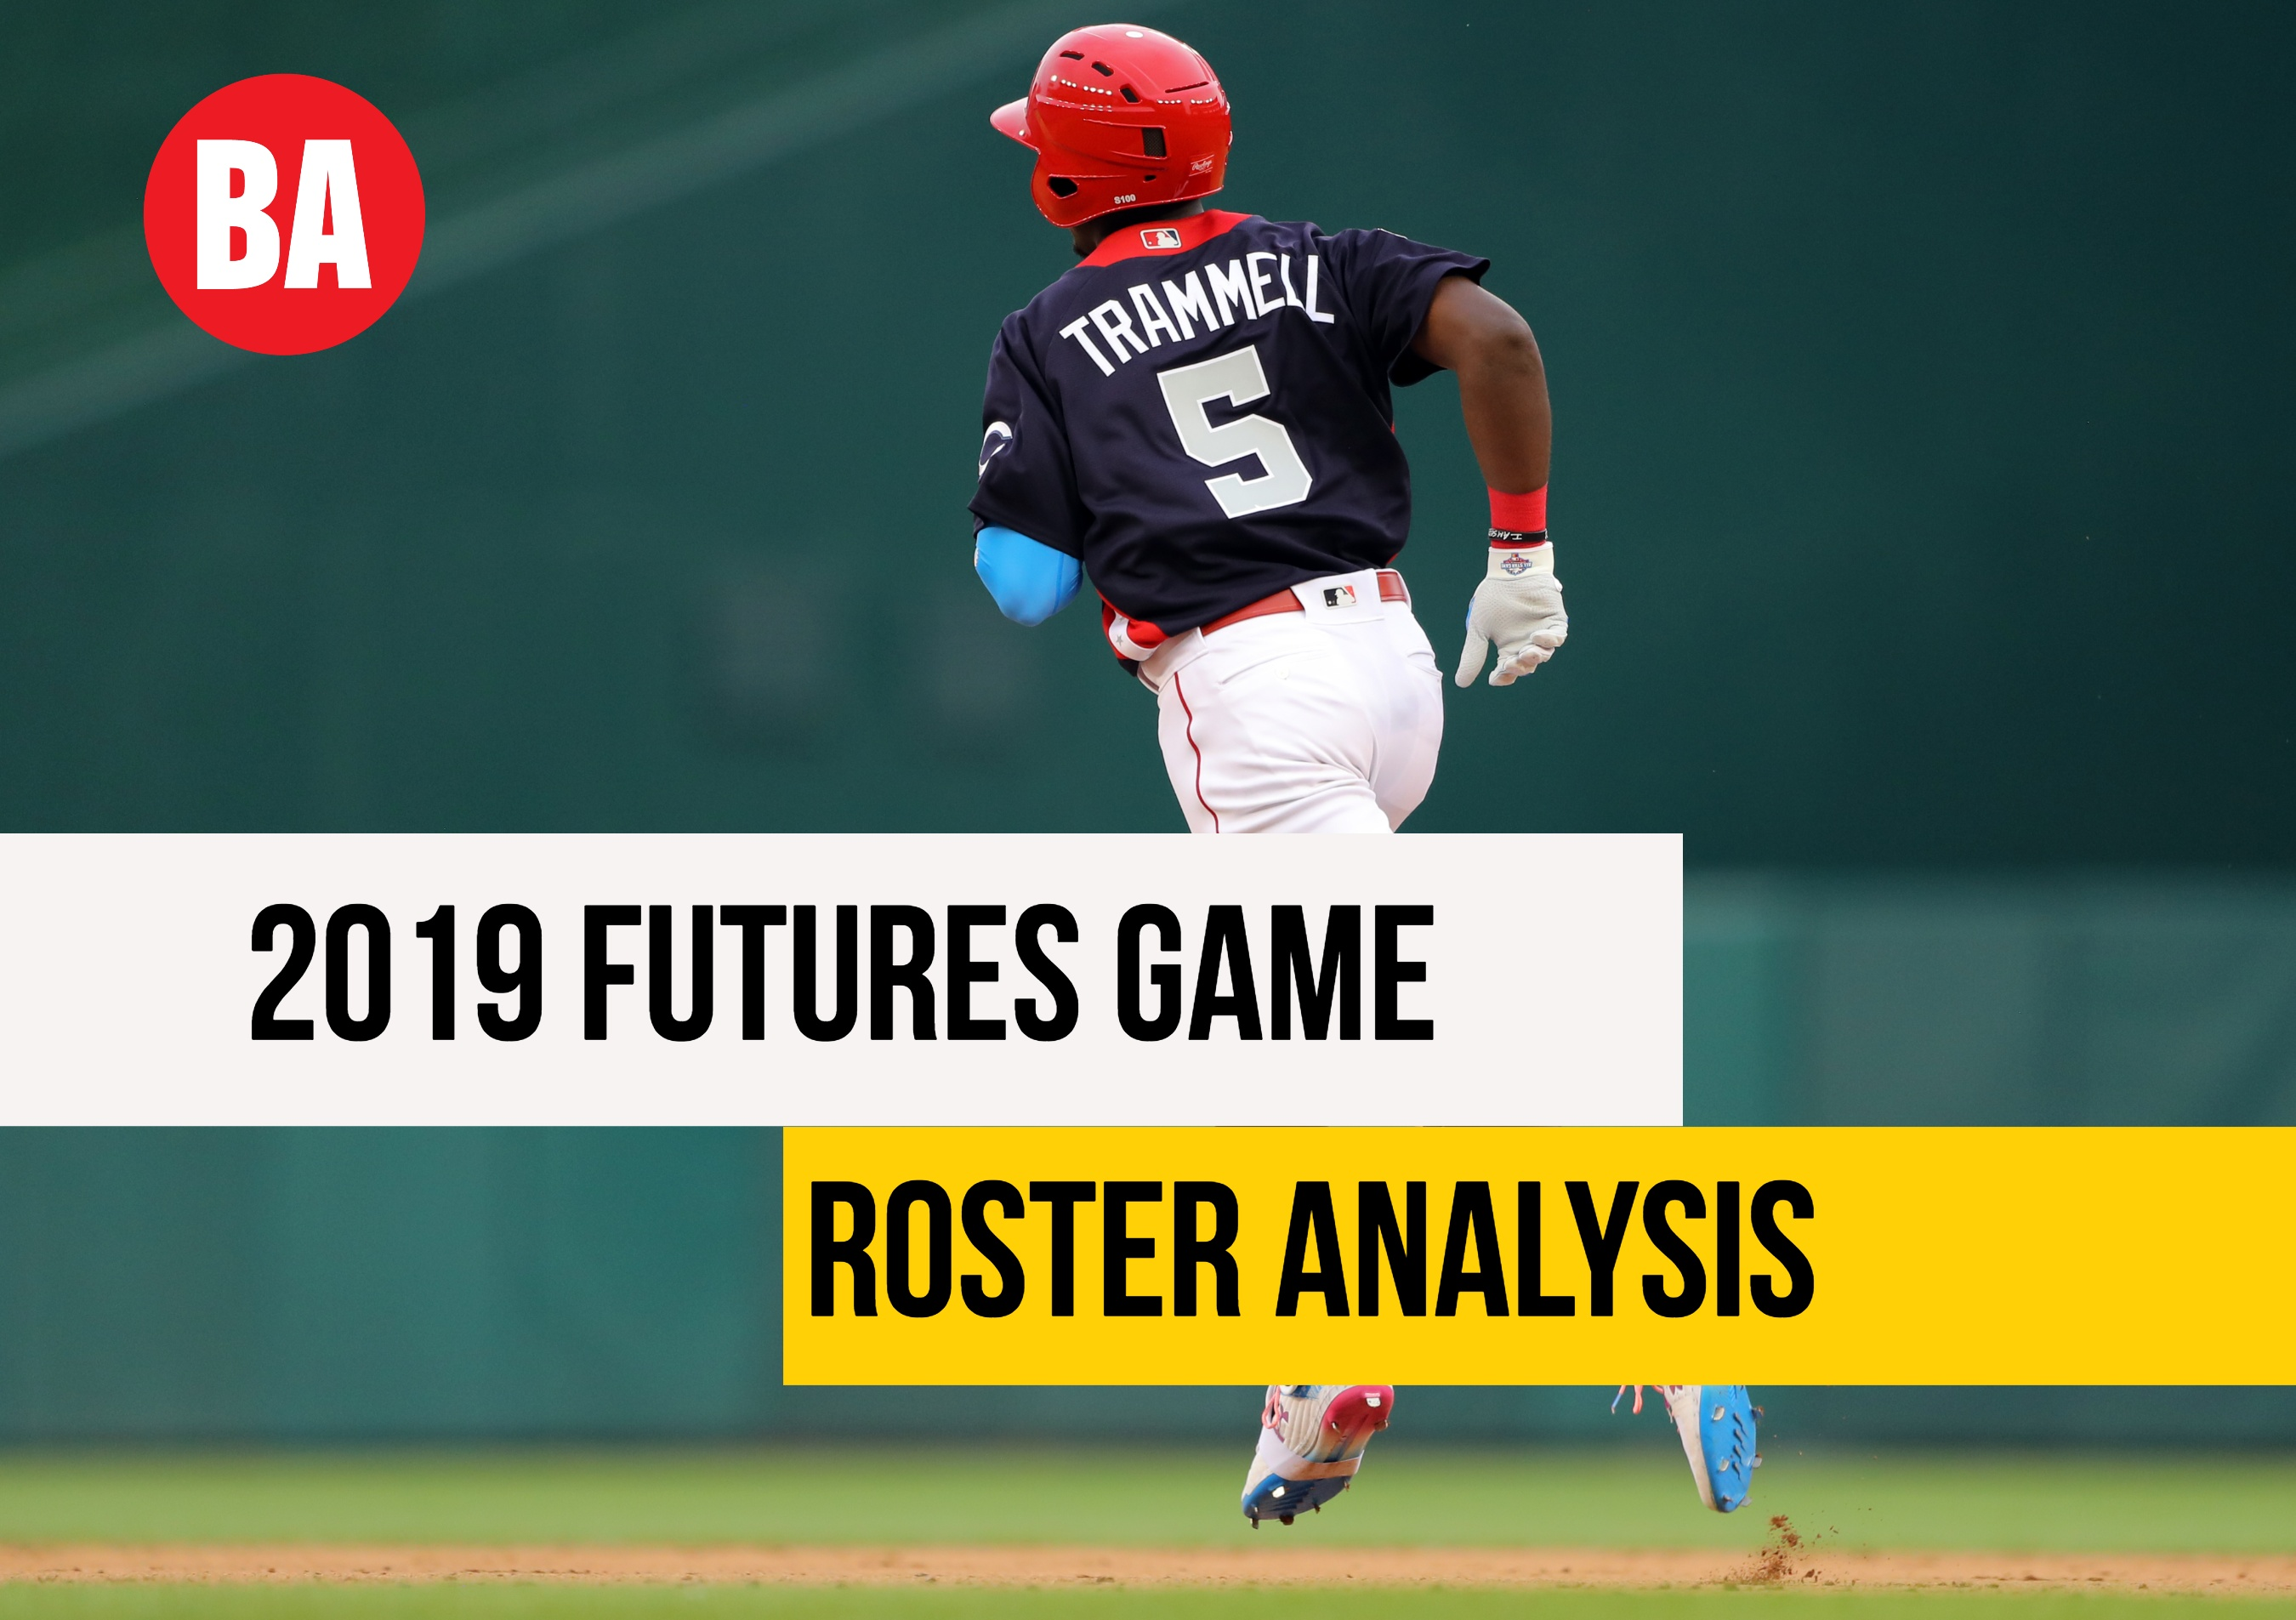 2019 MLB Futures Game Rosters Info & Analysis